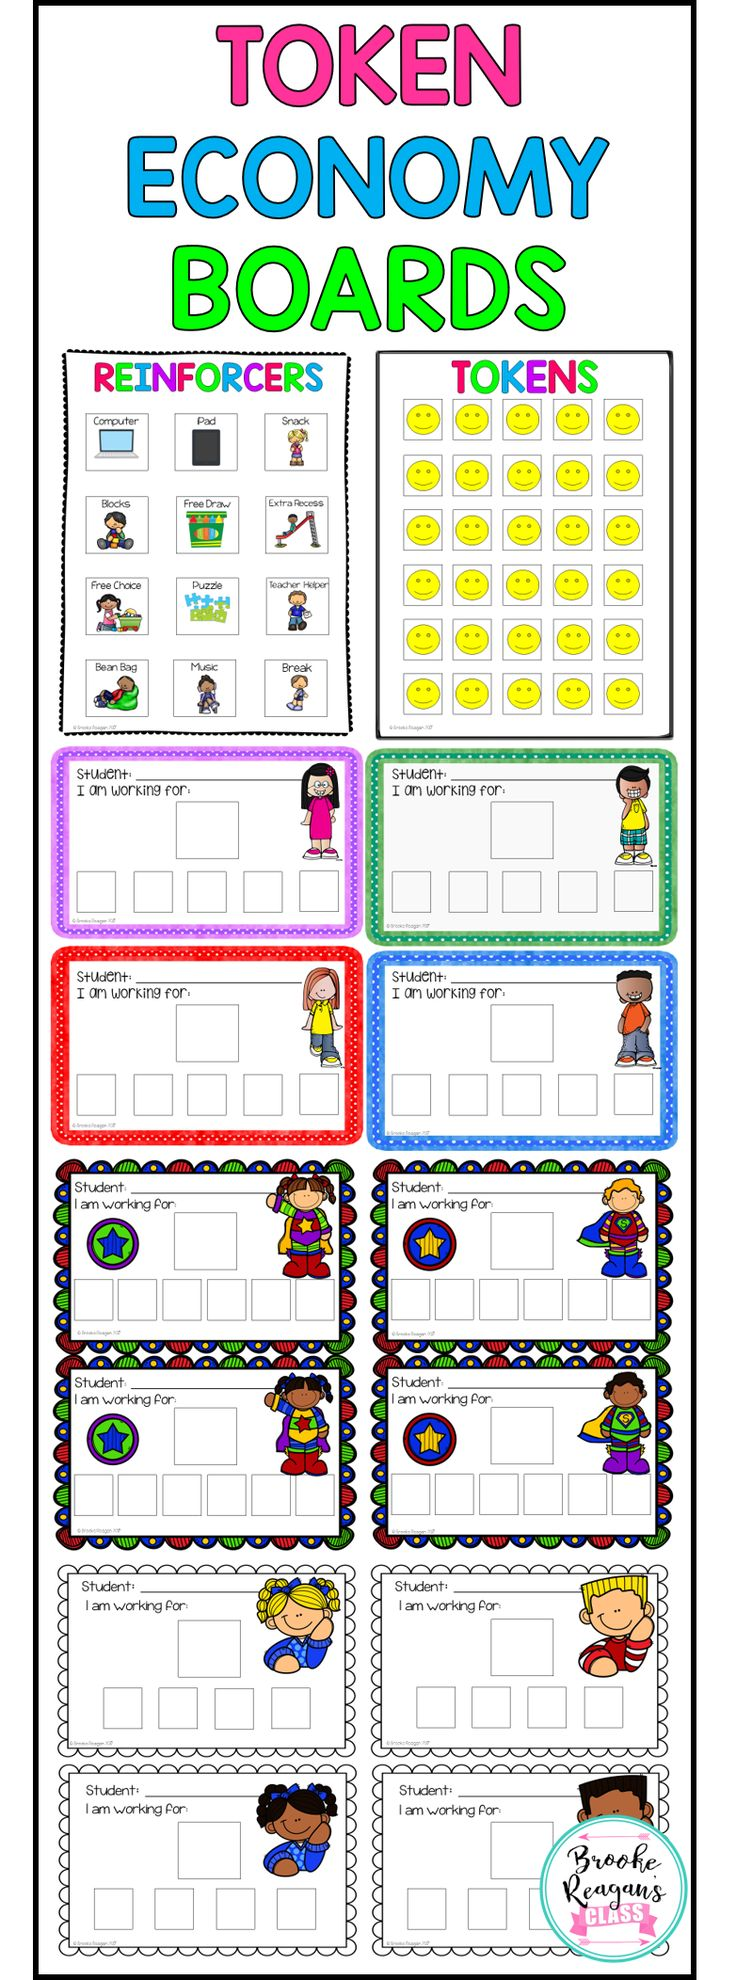 Positive rewards systems for reluctant learners. These tokens boards will help encourage the hardest of students to complete work and stay on task. Amazing behavior support.